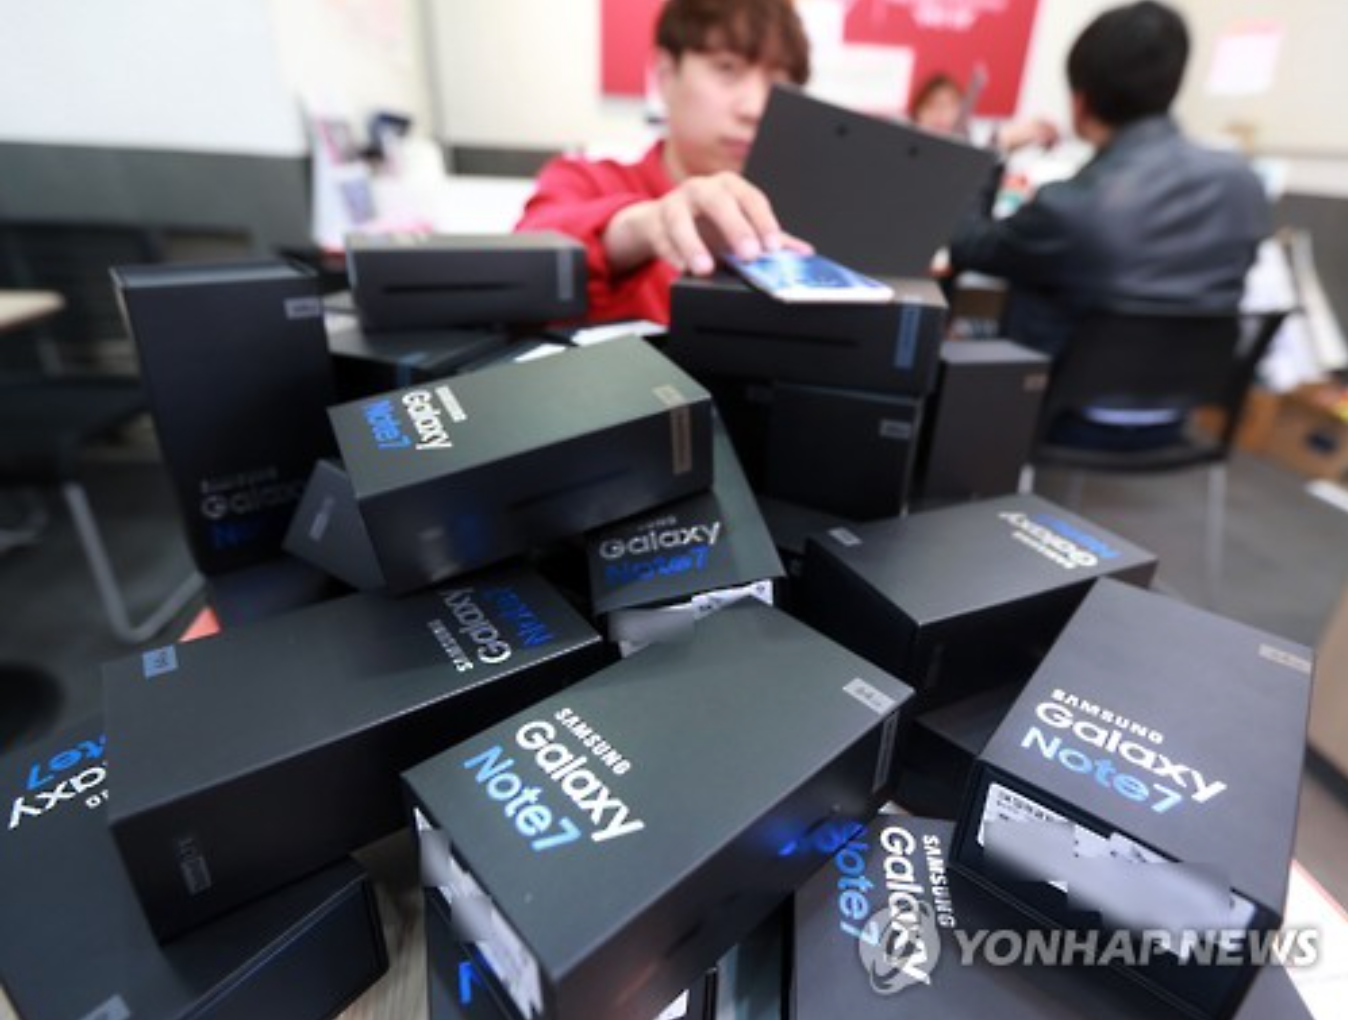 Samsung provides fireproof gloves, boxes to return exploding phones